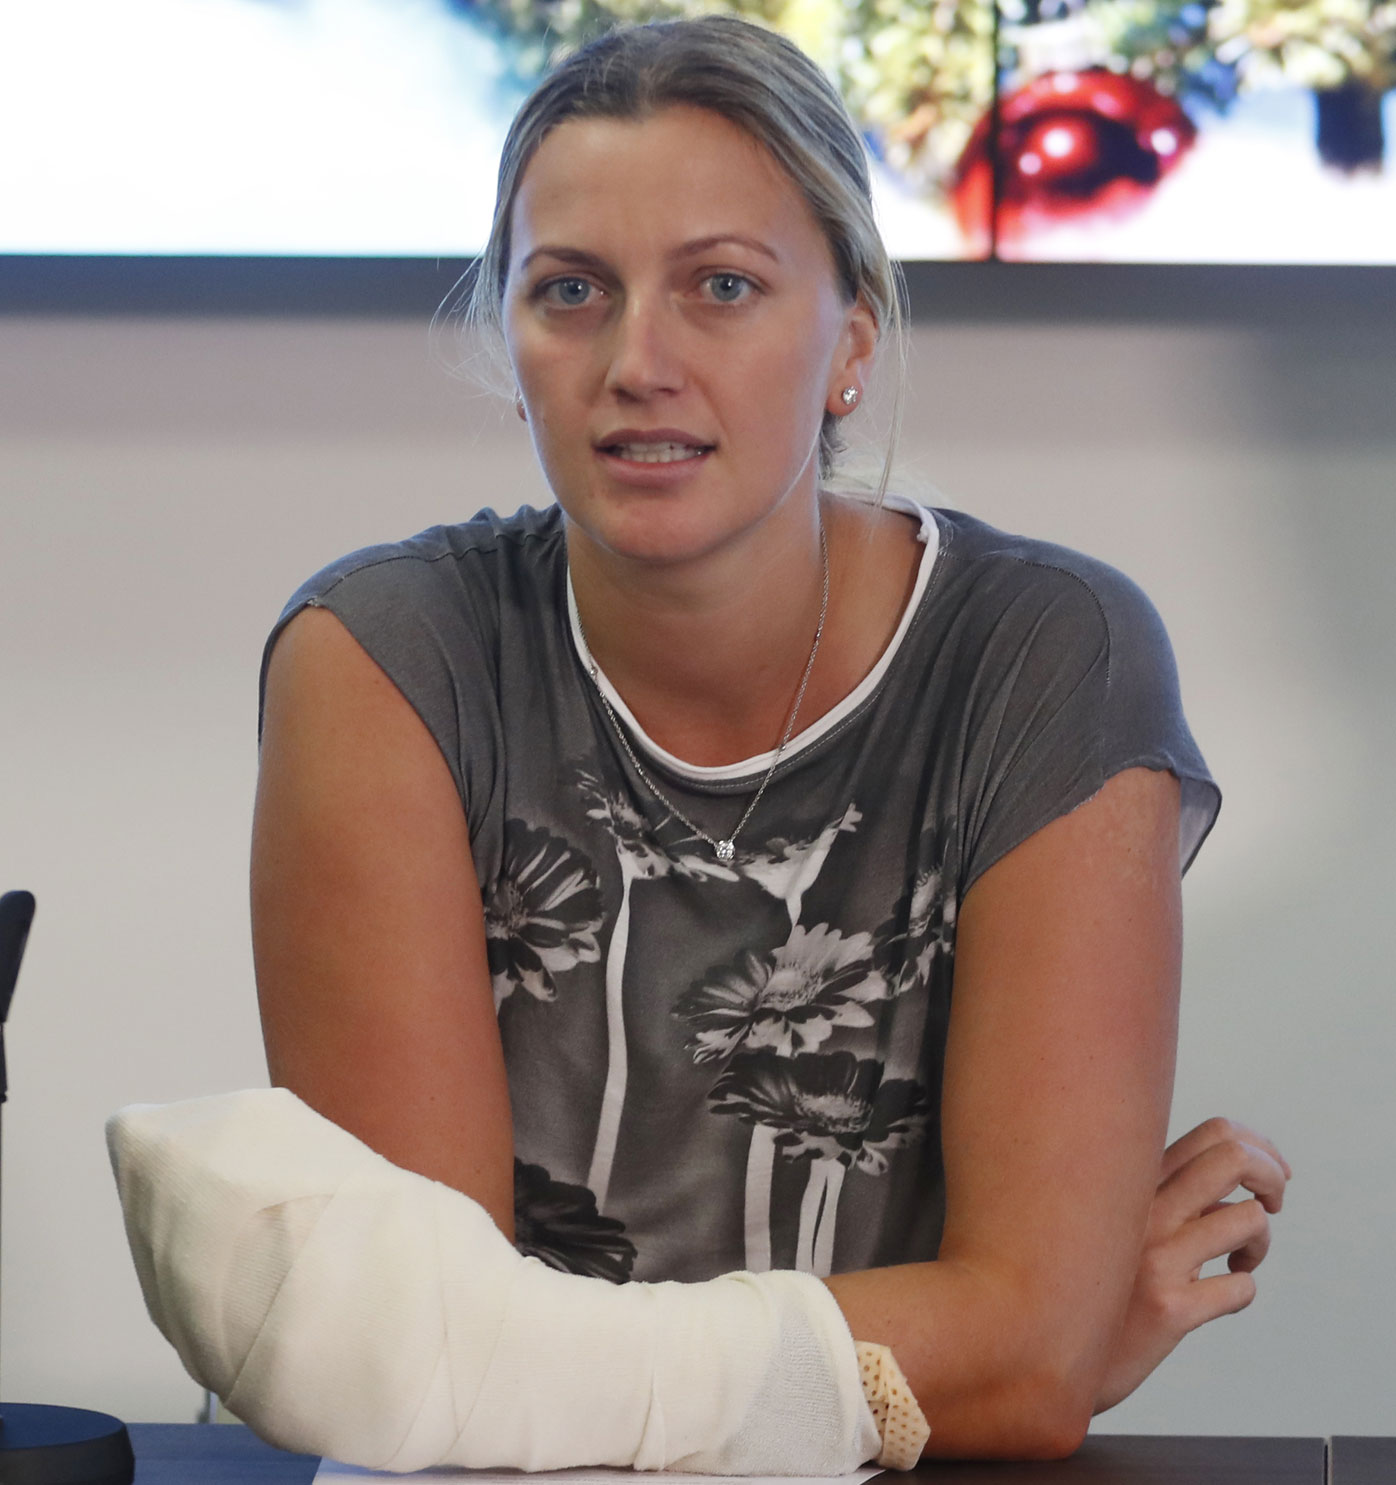 Kvitova on her sensational 10-match unbeaten streak